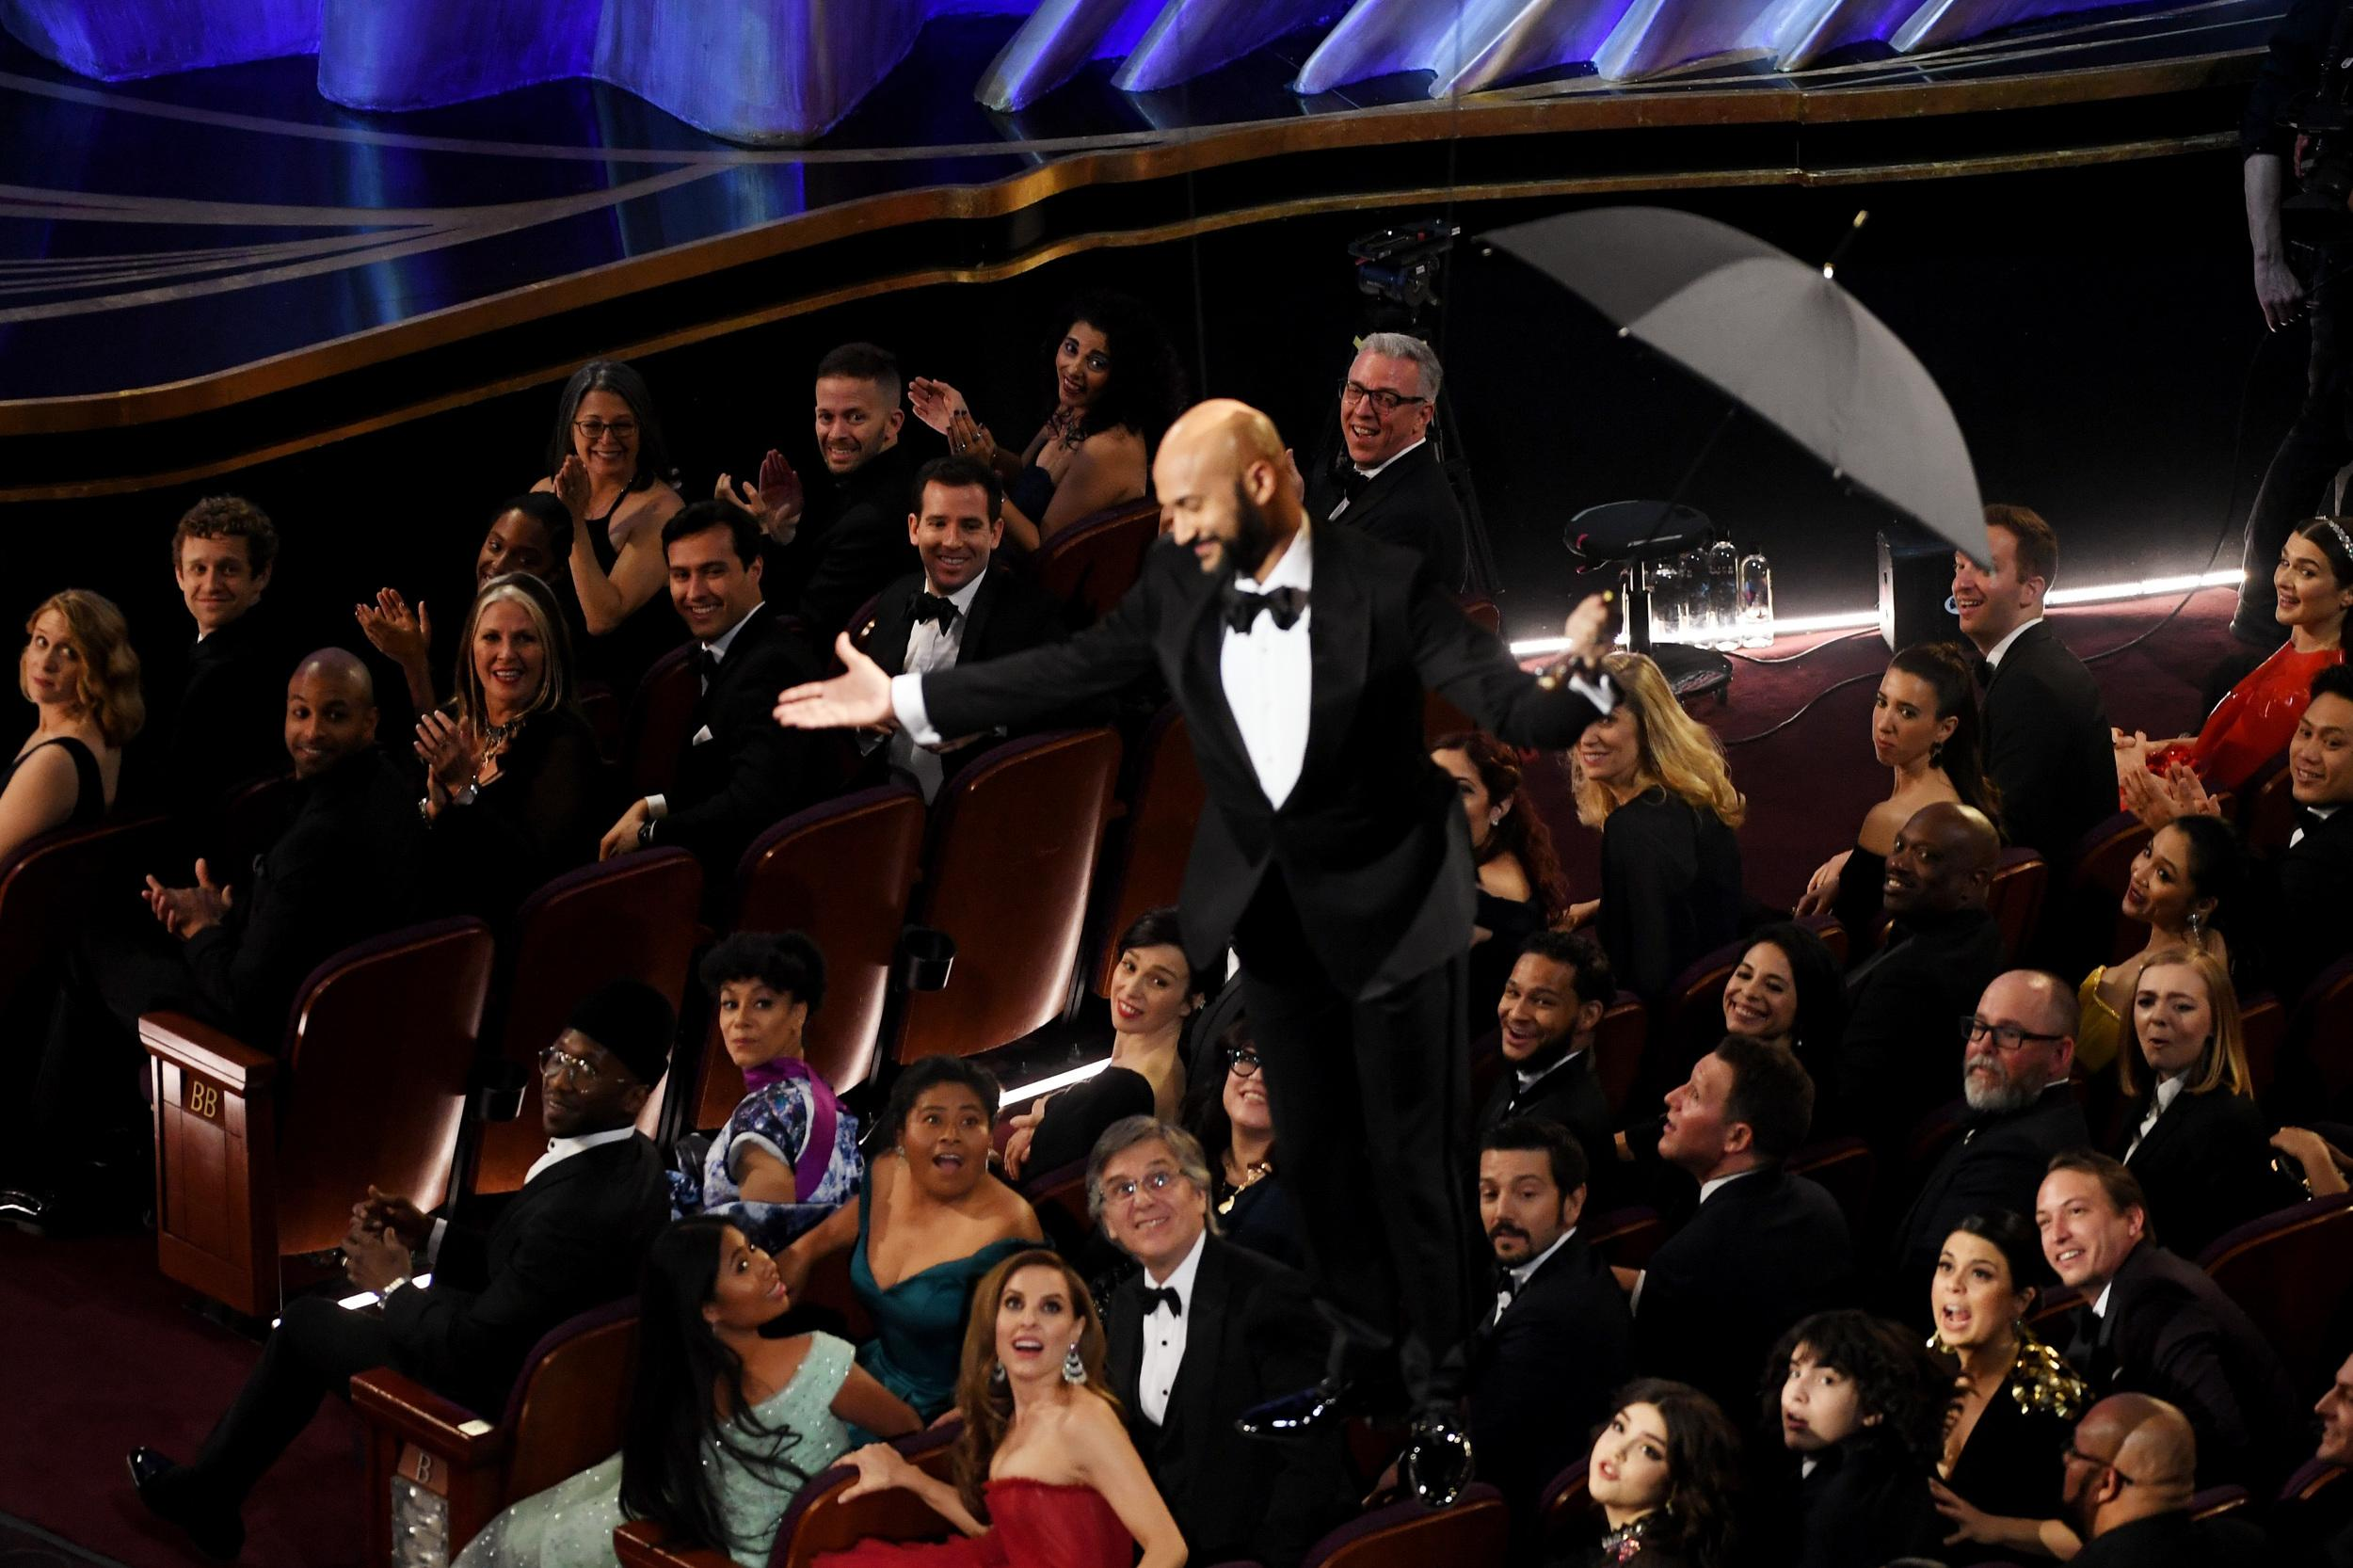 HOLLYWOOD, CALIFORNIA - FEBRUARY 24: Keegan-Michael Key is lowered to the floor during the 91st Annual Academy Awards at Dolby Theatre on February 24, 2019 in Hollywood, California. (Photo by Kevin Winter/Getty Images)